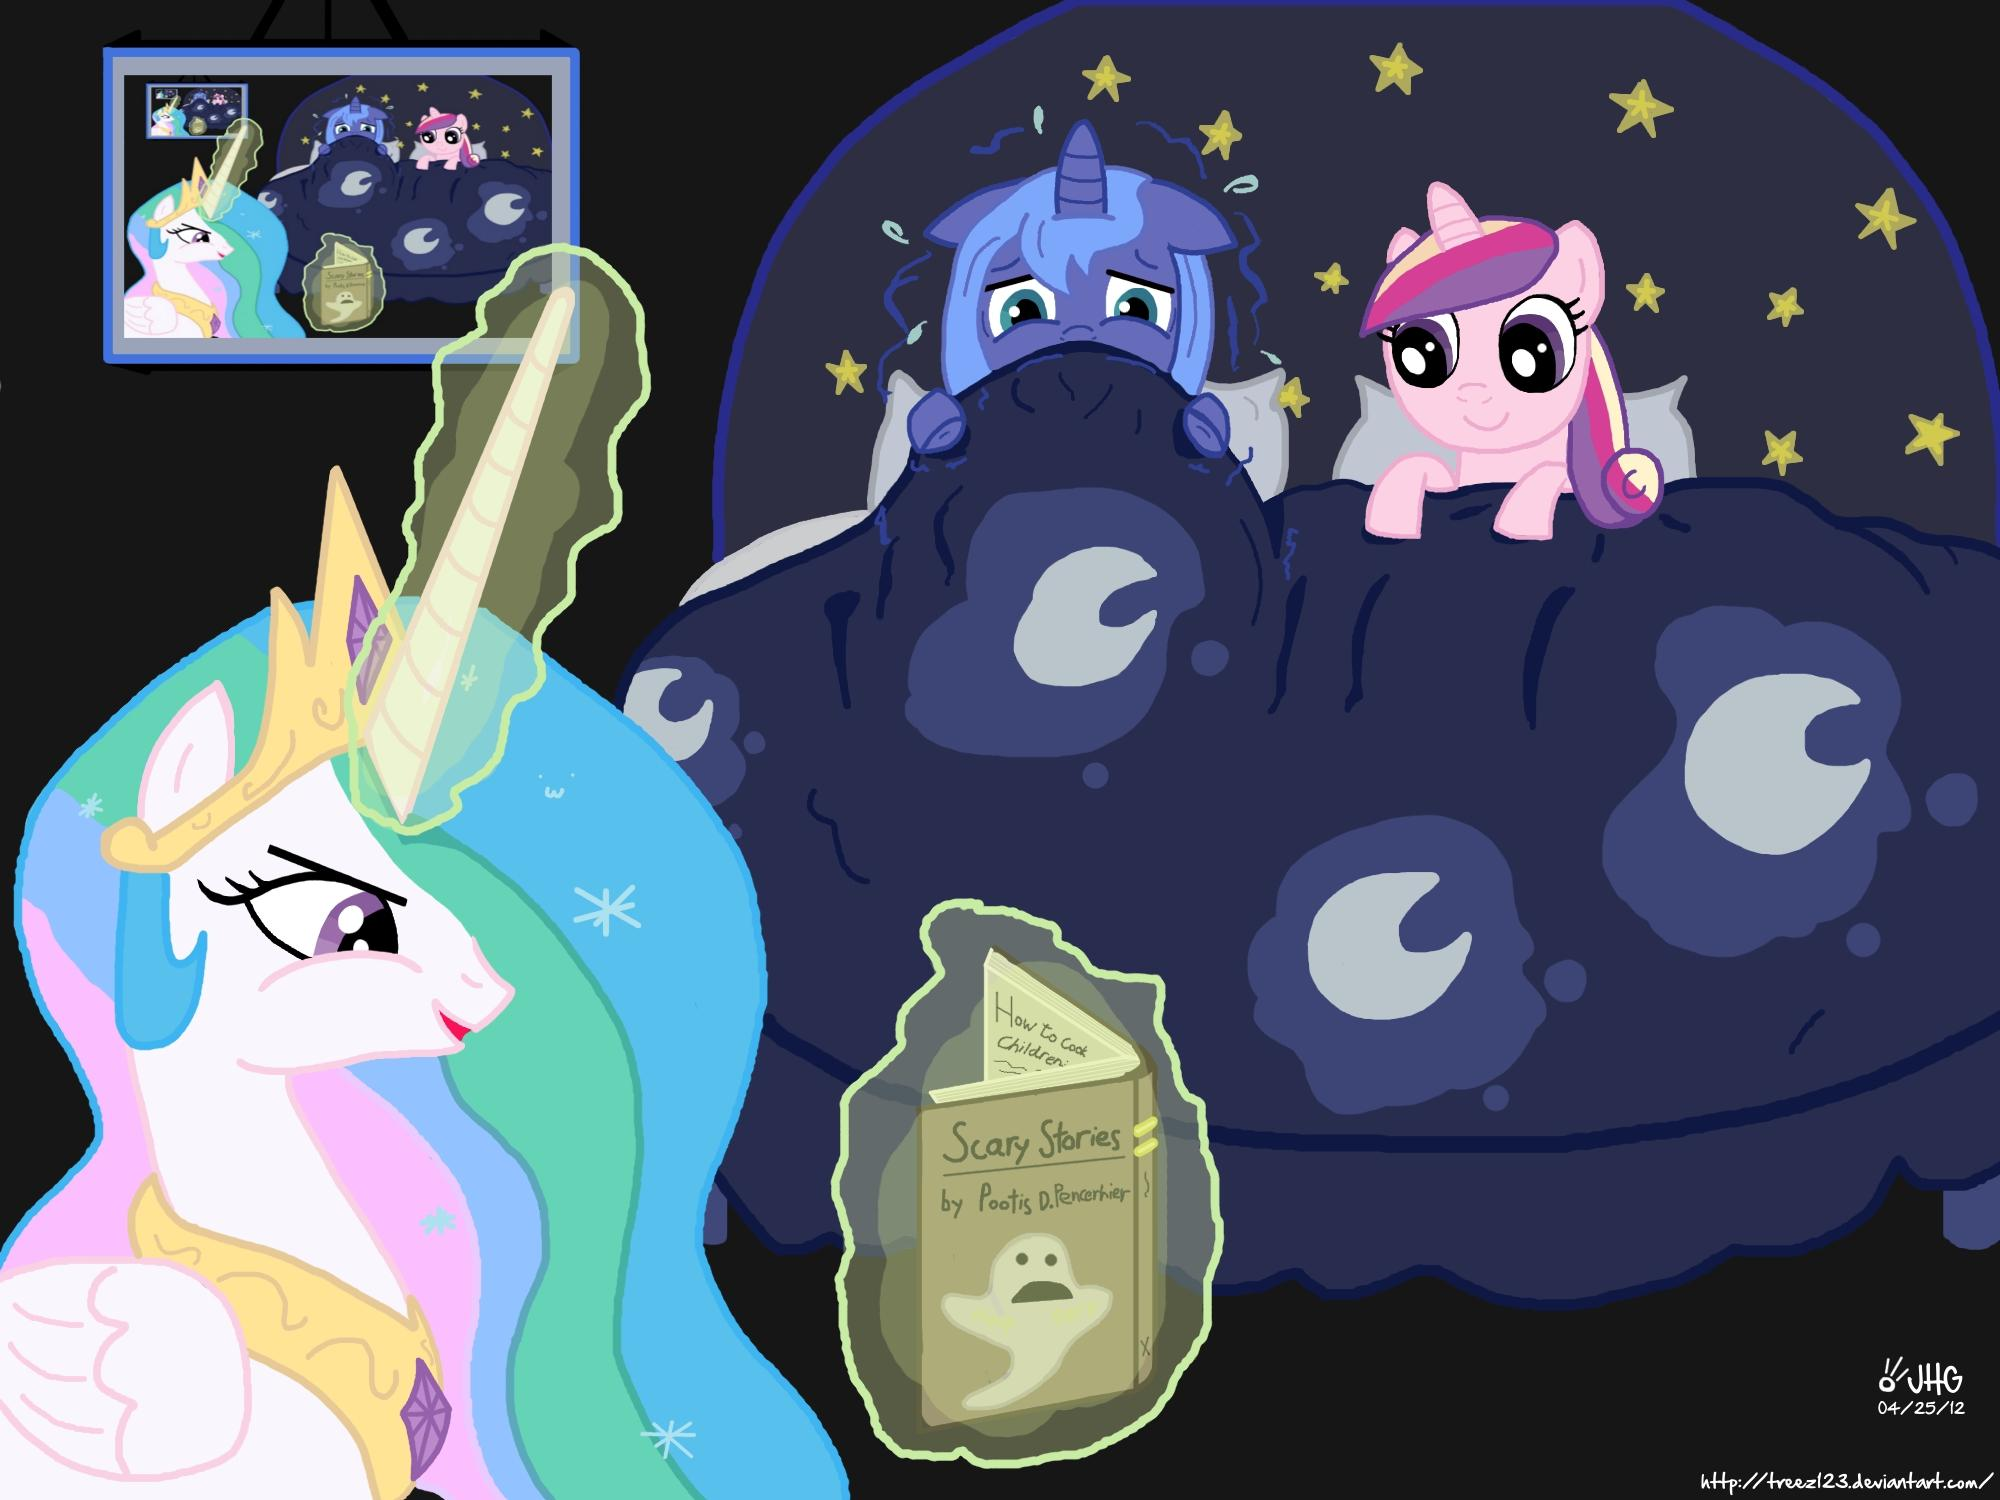 Cute Babies Wallpaper With Tears Image 292891 My Little Pony Friendship Is Magic